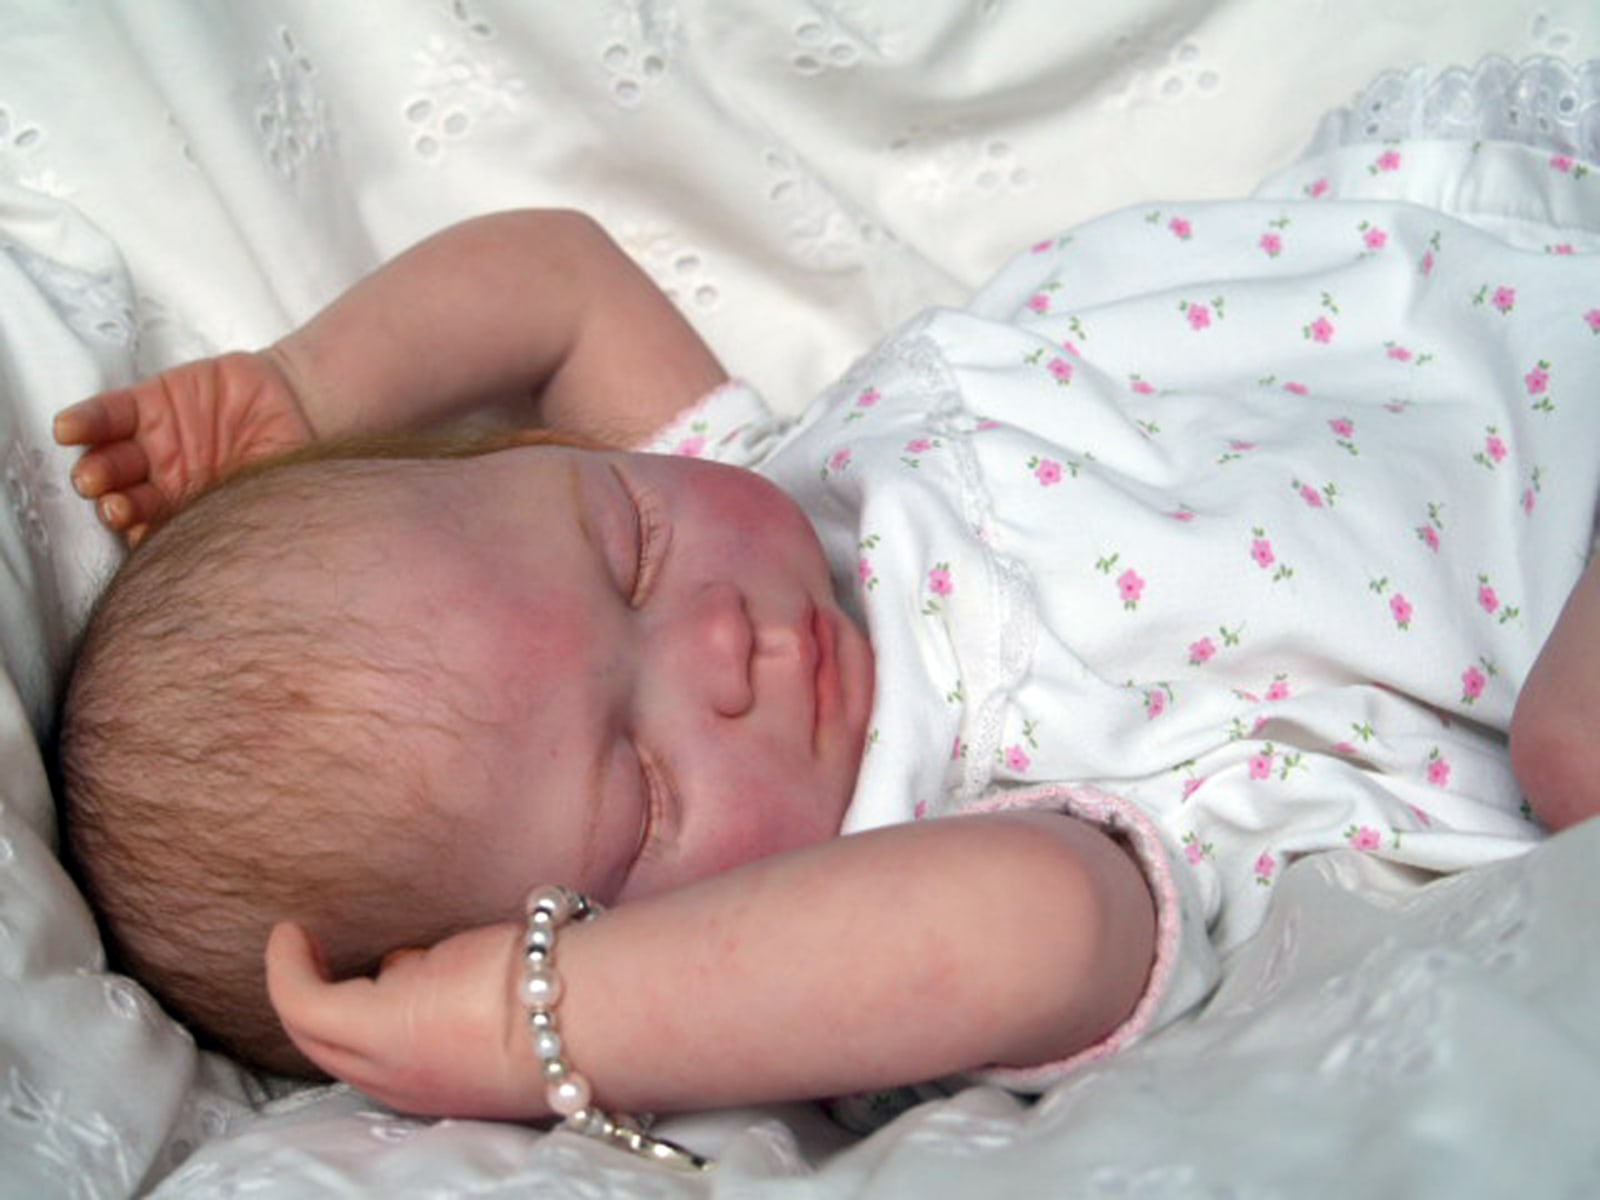 Fake Babies Ease Womens Anxiety Sadness TODAYcom - Look like real baby animals actually incredibly realistic toys